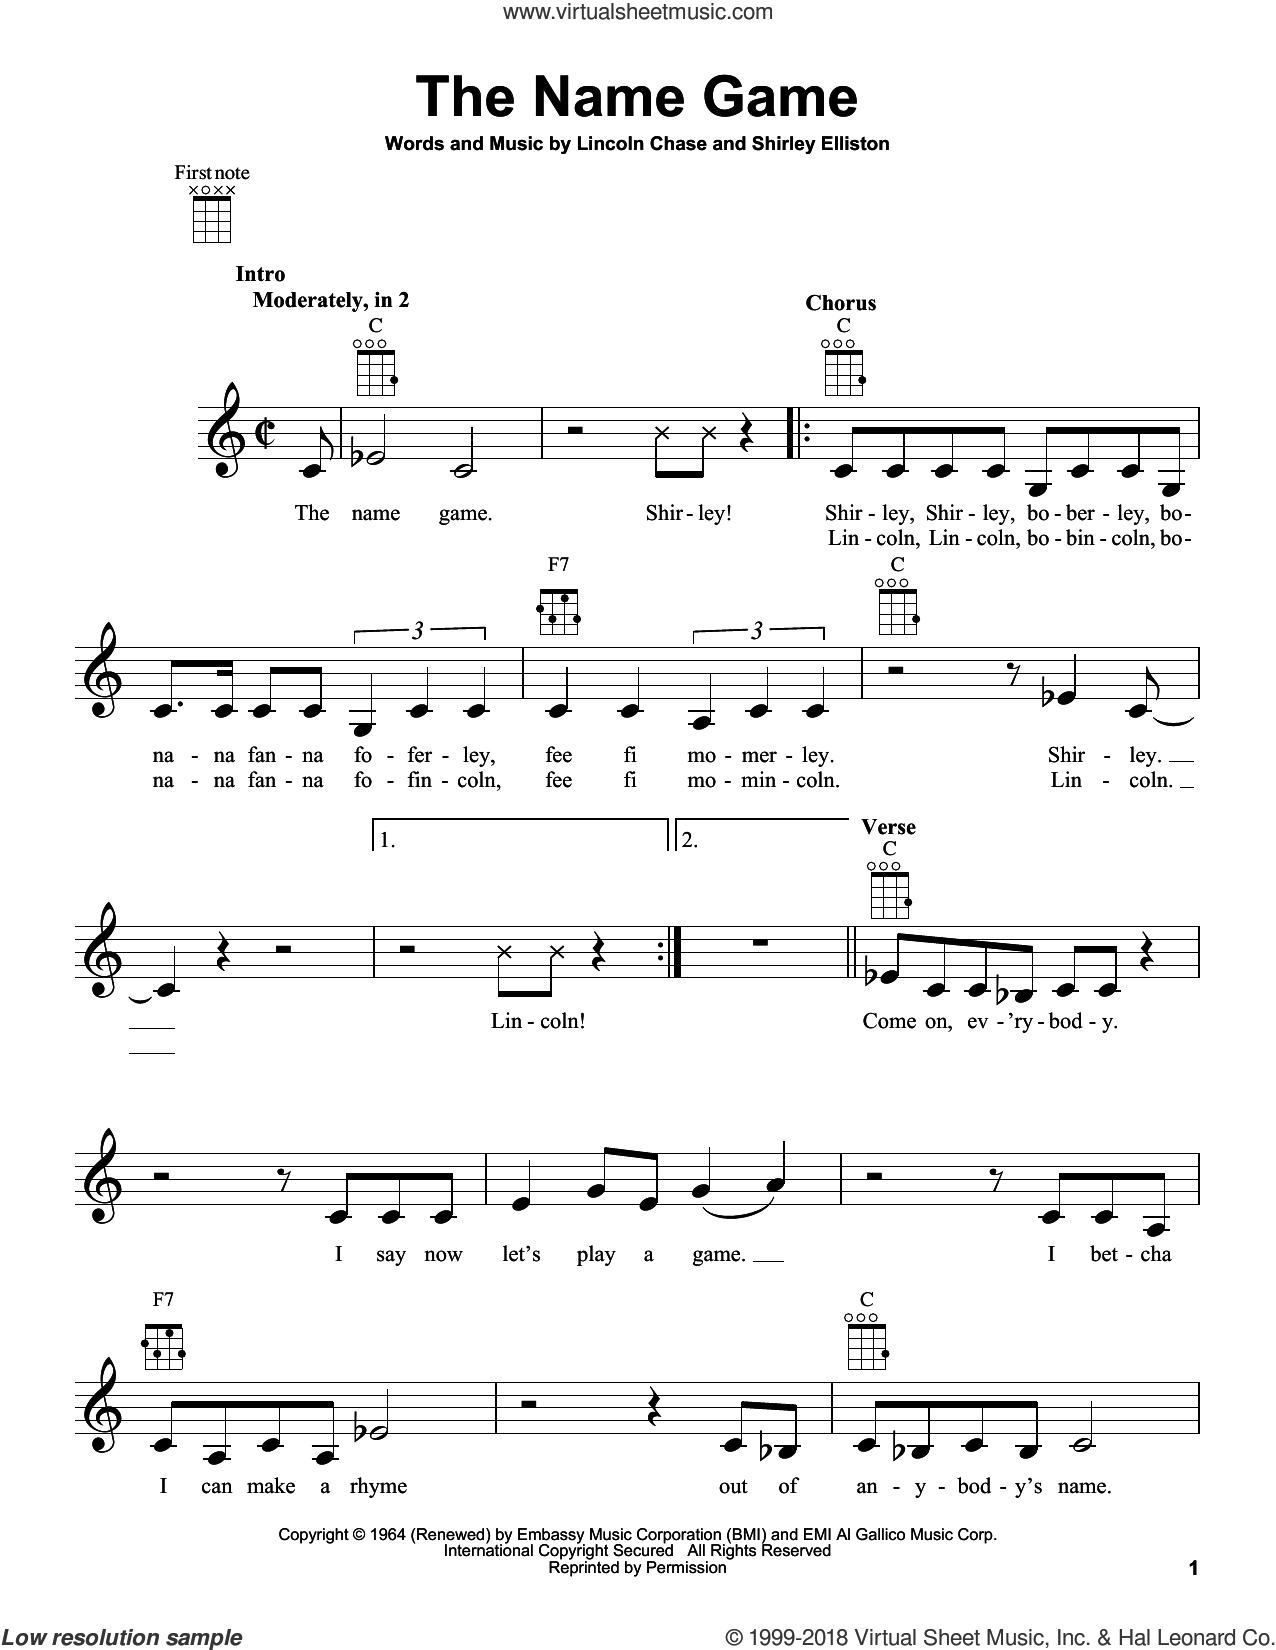 The Name Game sheet music for ukulele by Shirley Elliston